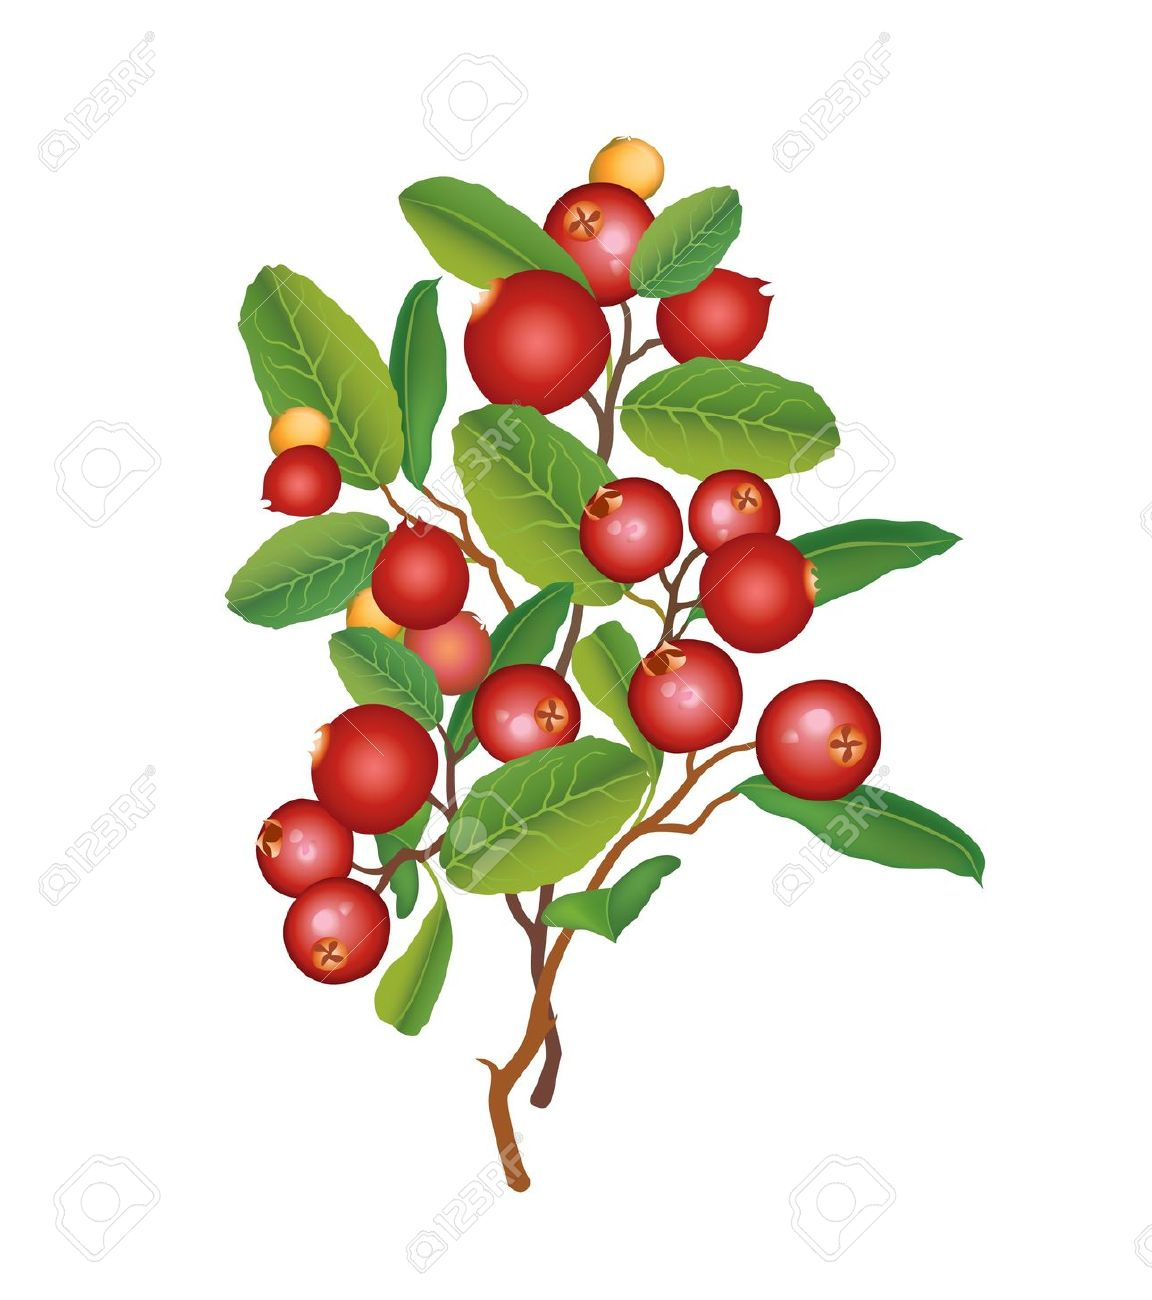 Berry clipart berry bush. Cranberry cliparts free download